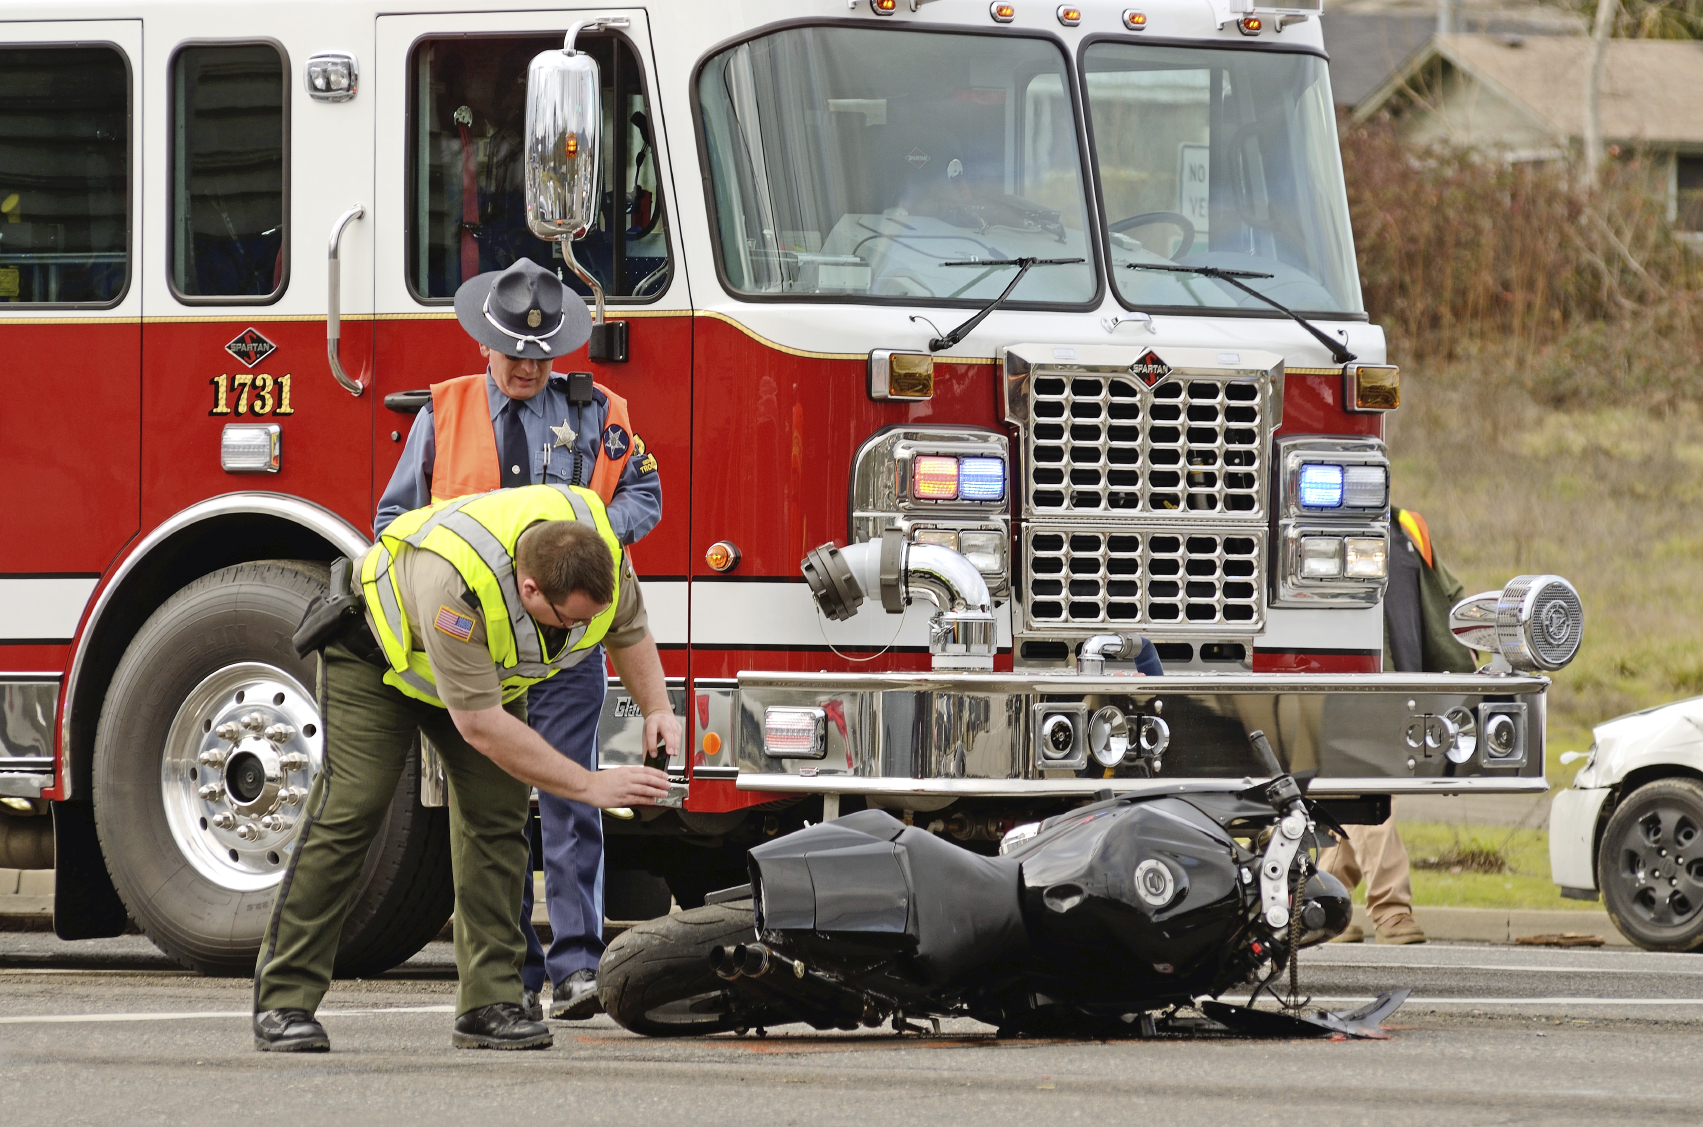 Injured In Accident Los Angeles Motorcyclist Injured By Freeway Bridge Jumper Los